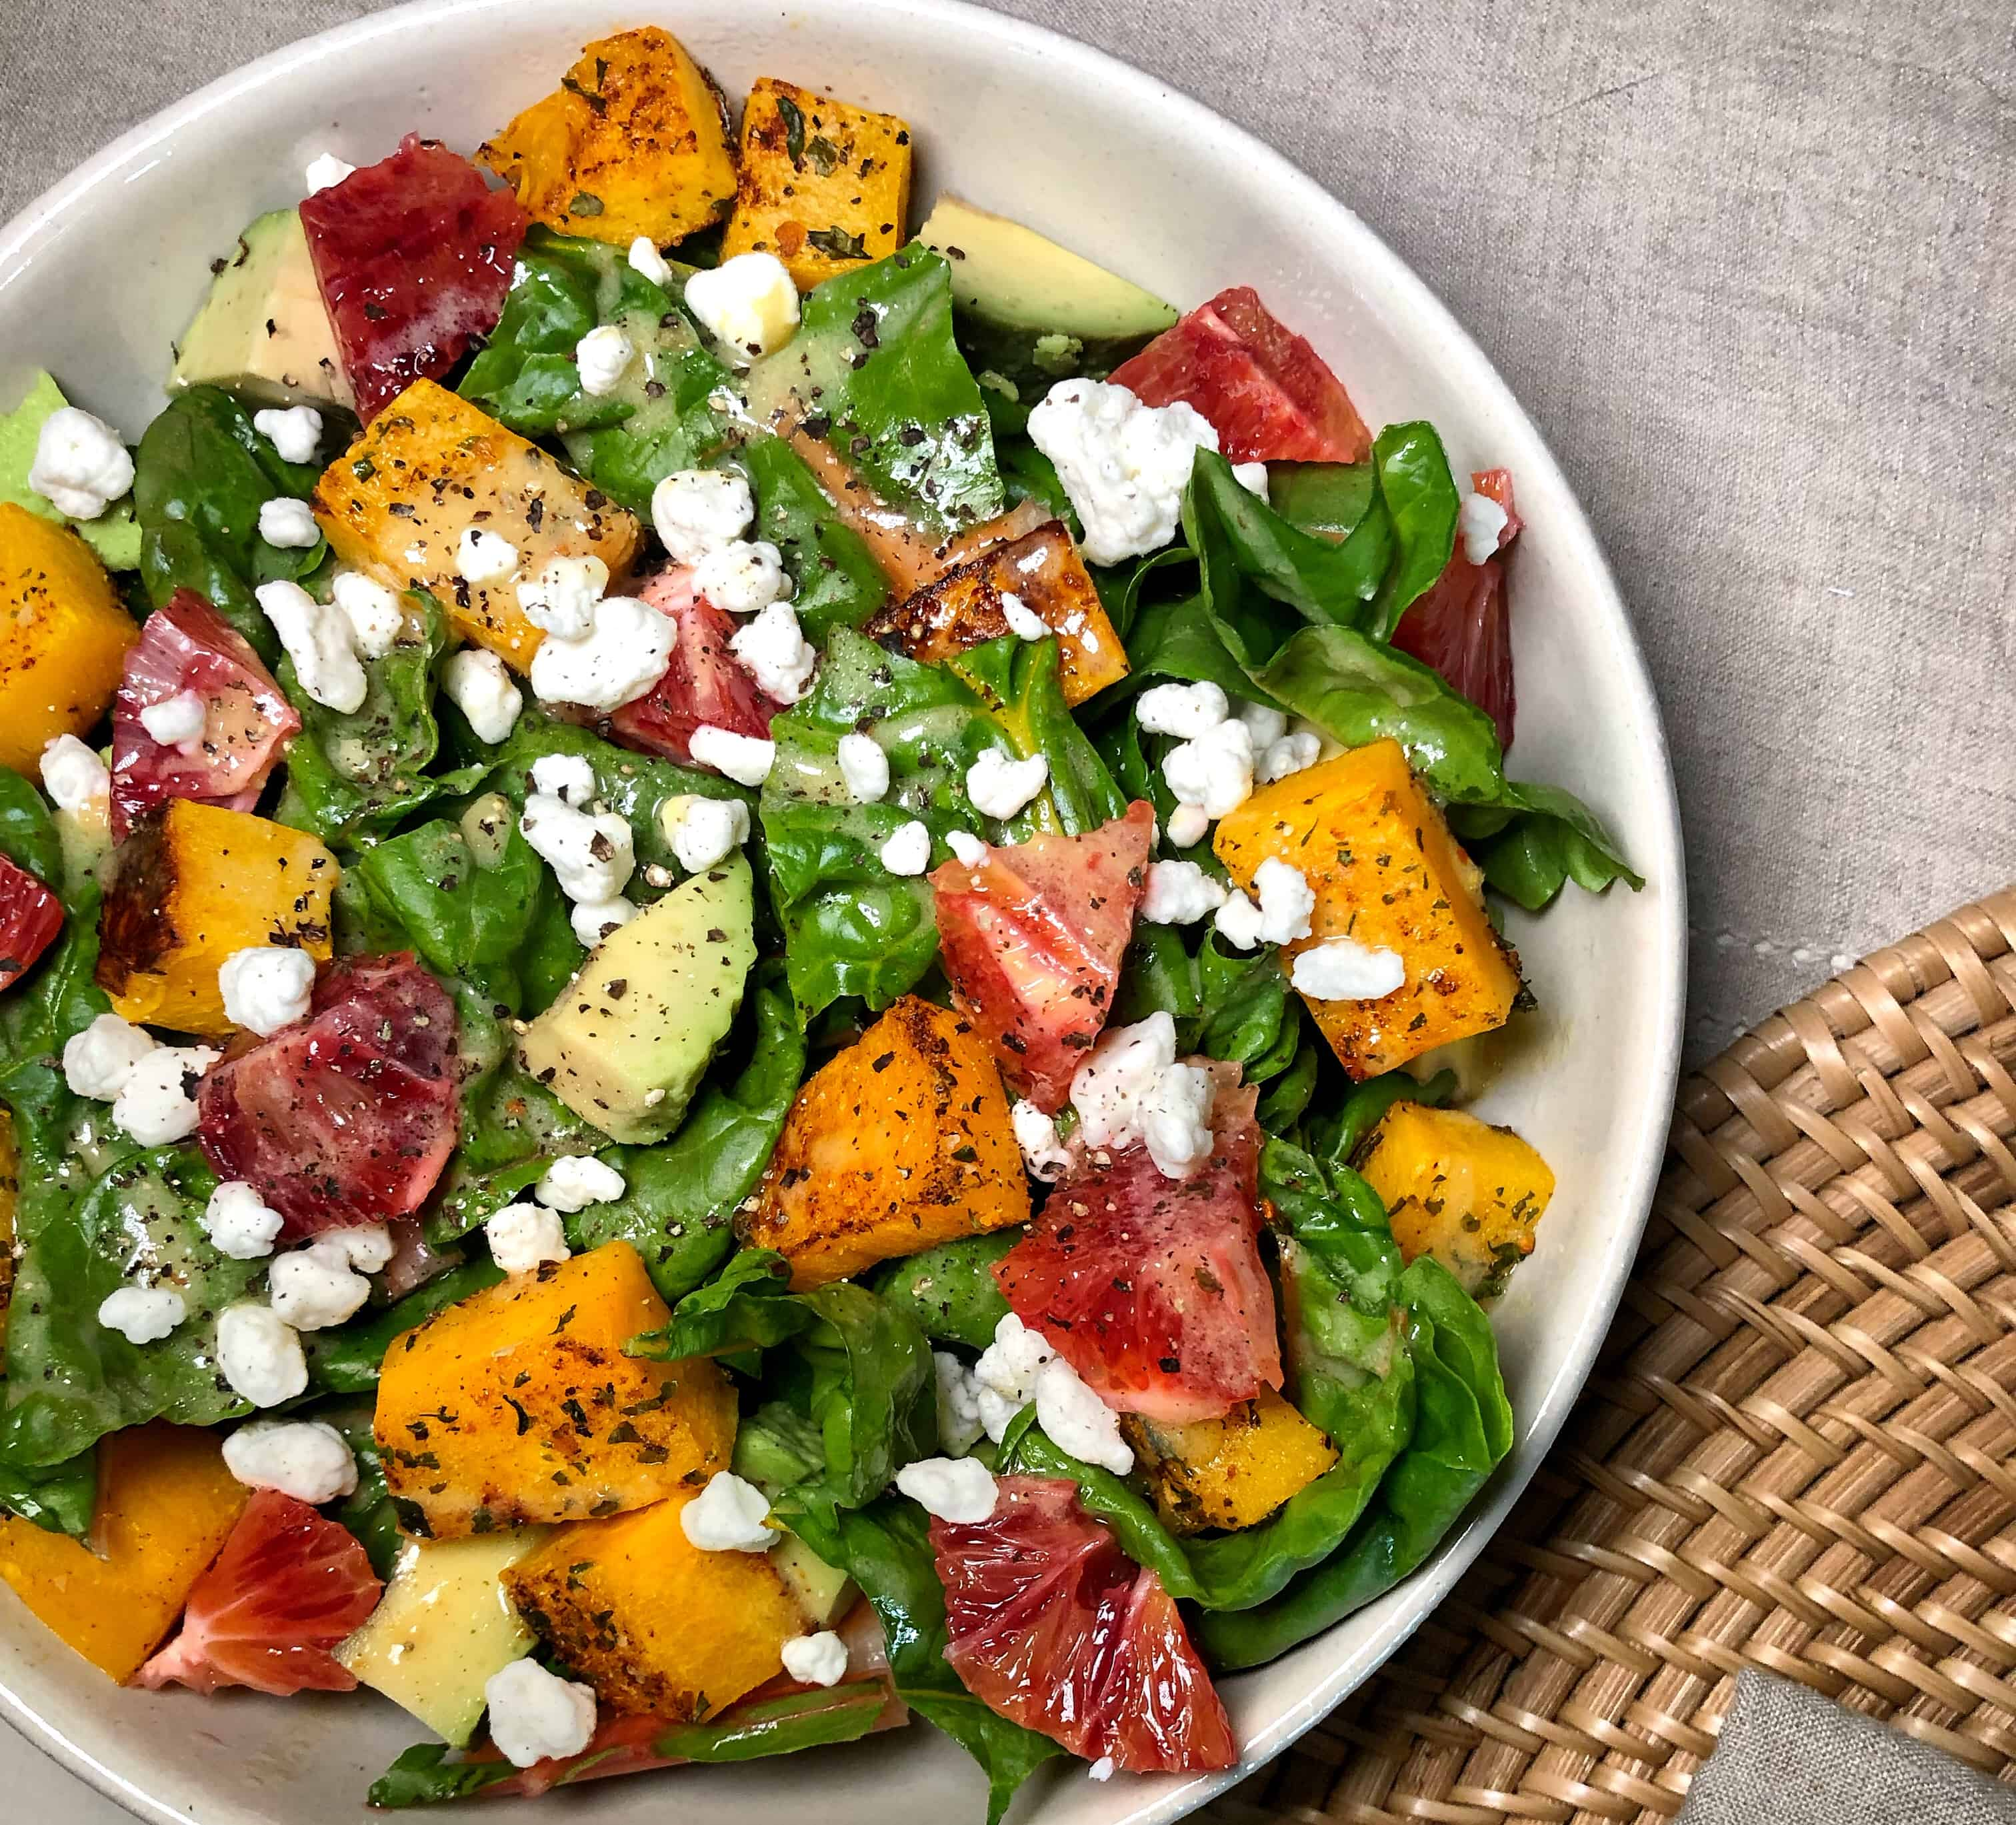 That Good Salad Recipe: Easy Green Salad Recipe With Blood Orange Vinaigrette